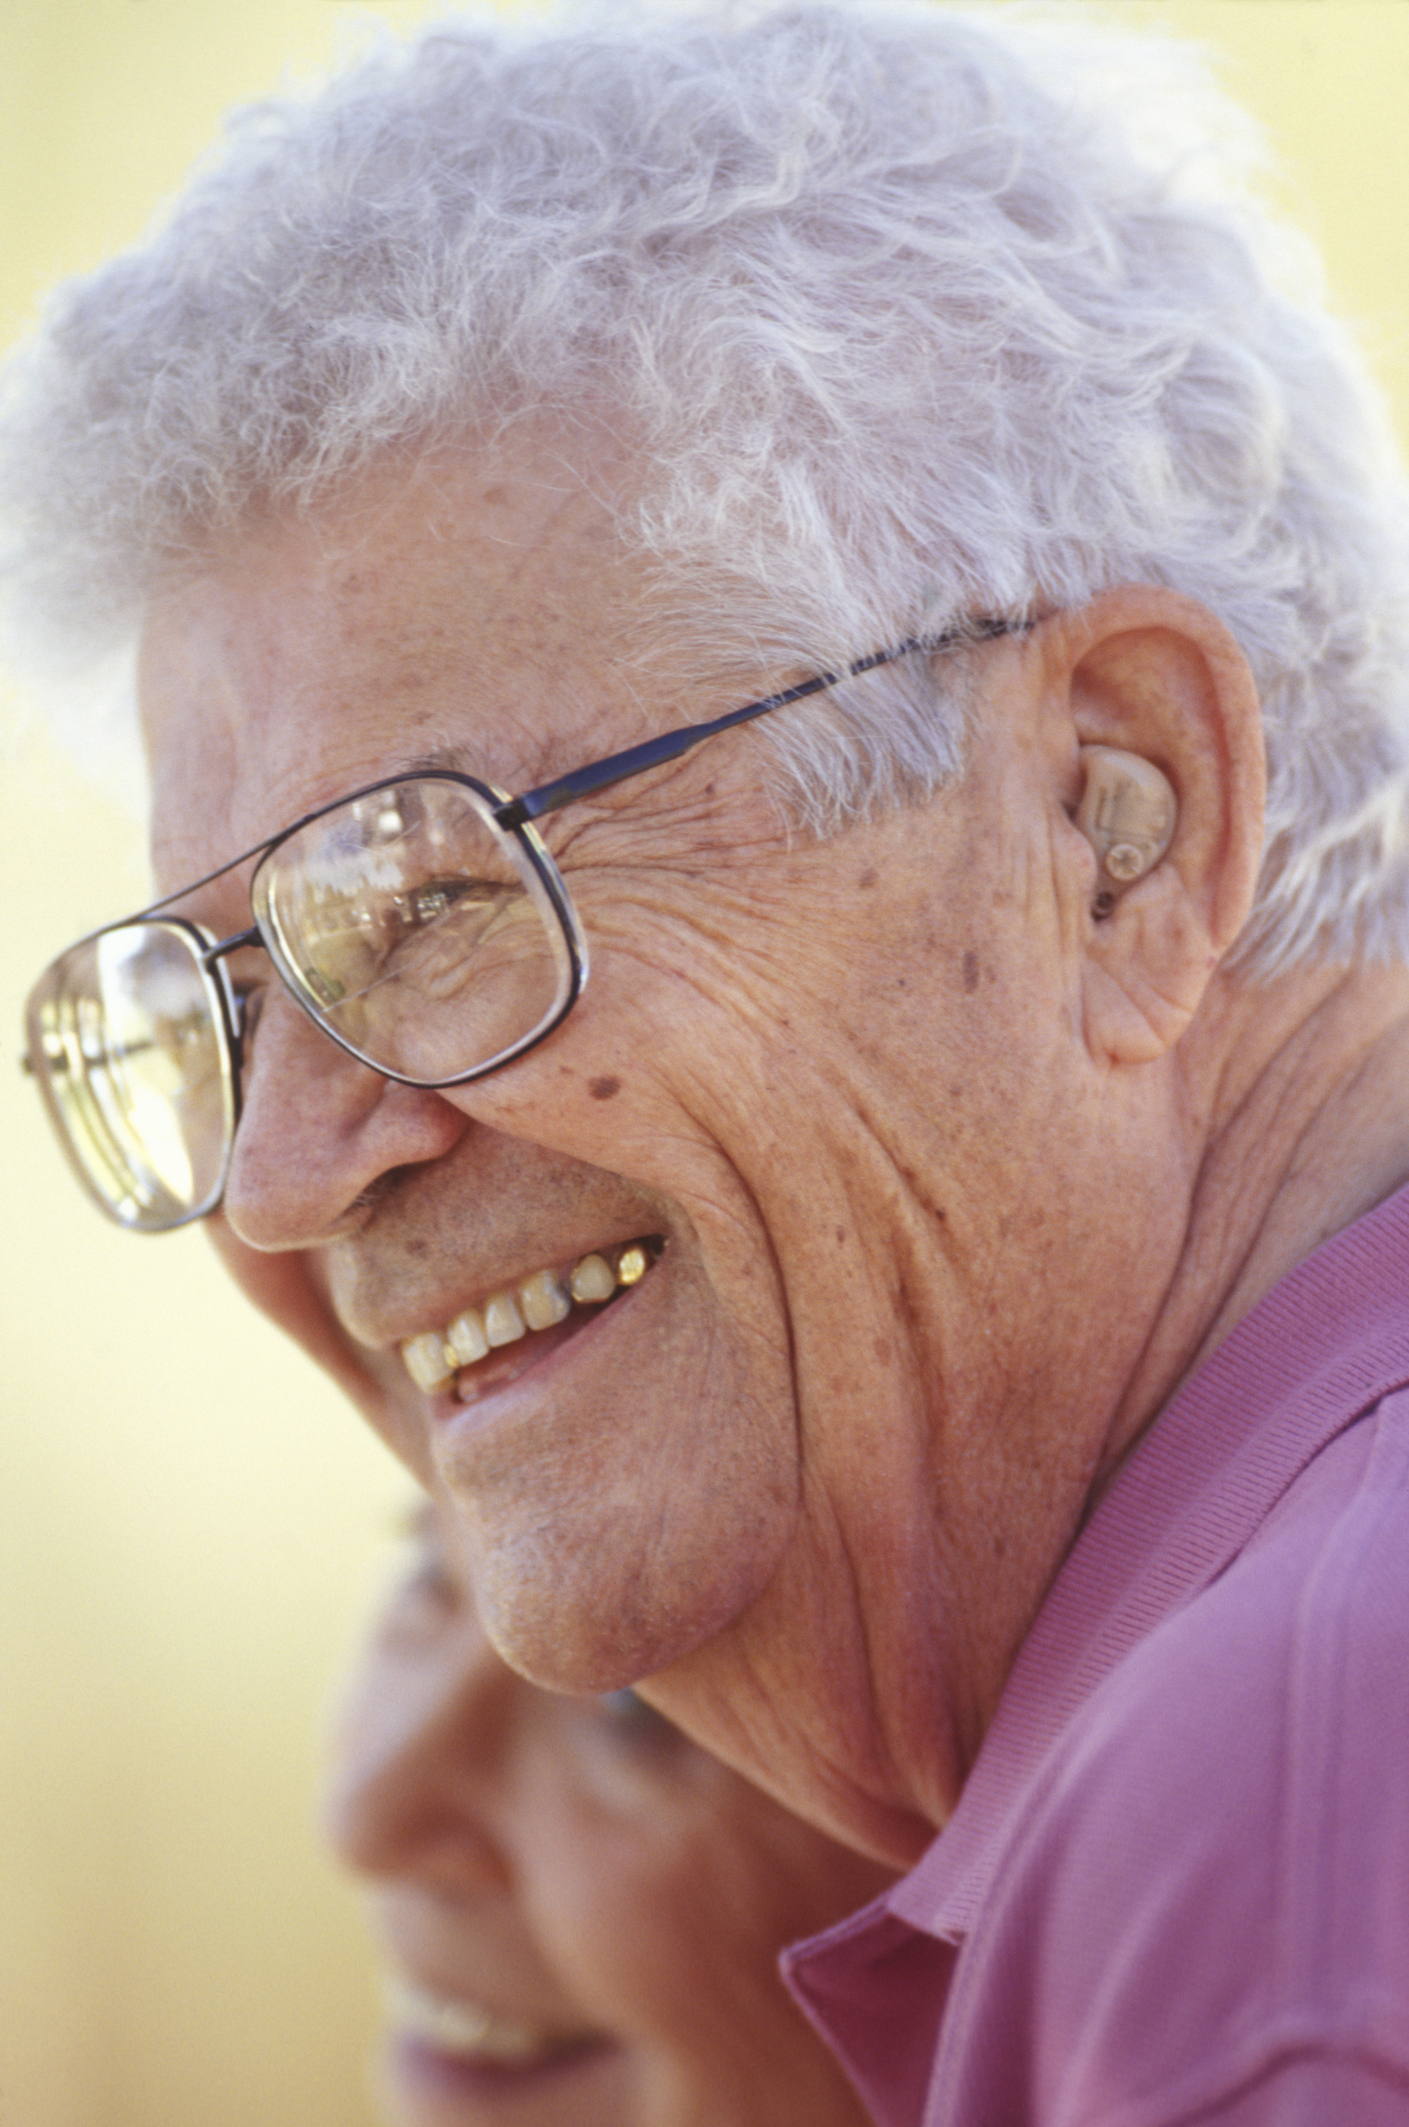 Senior man wearing spectacles, smiling, outdoors, close-up